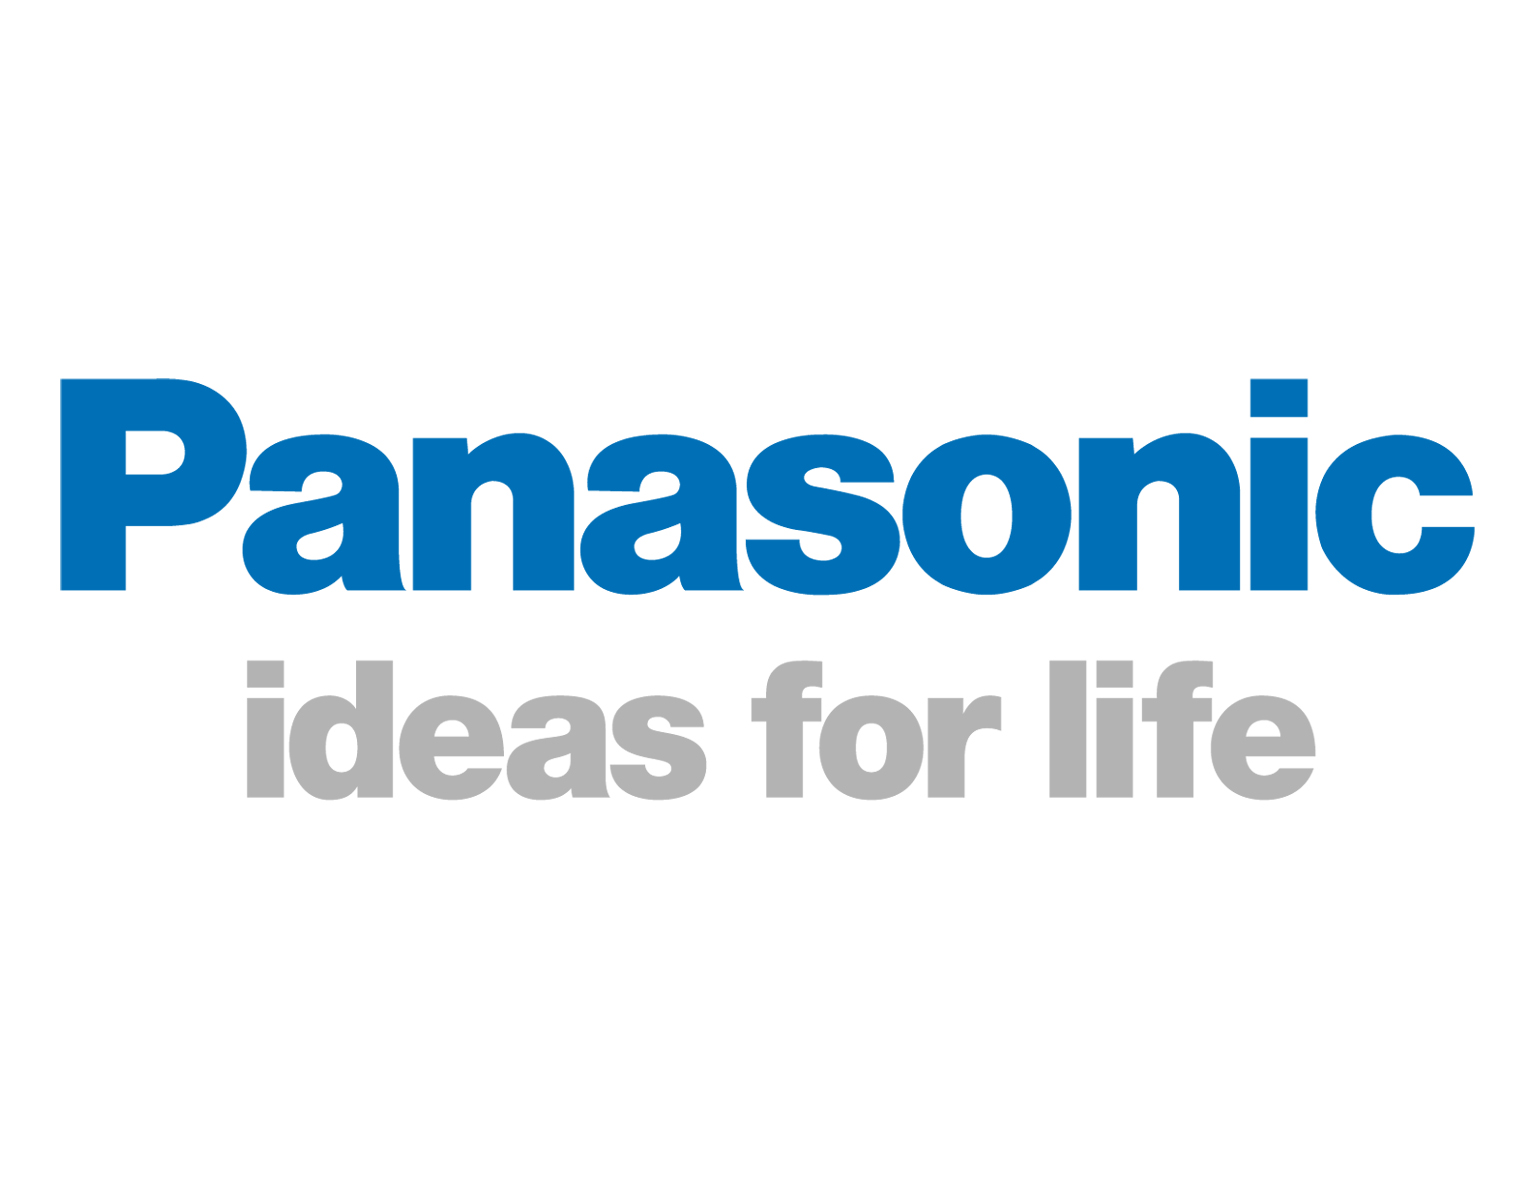 images/brands/panasonic.jpg